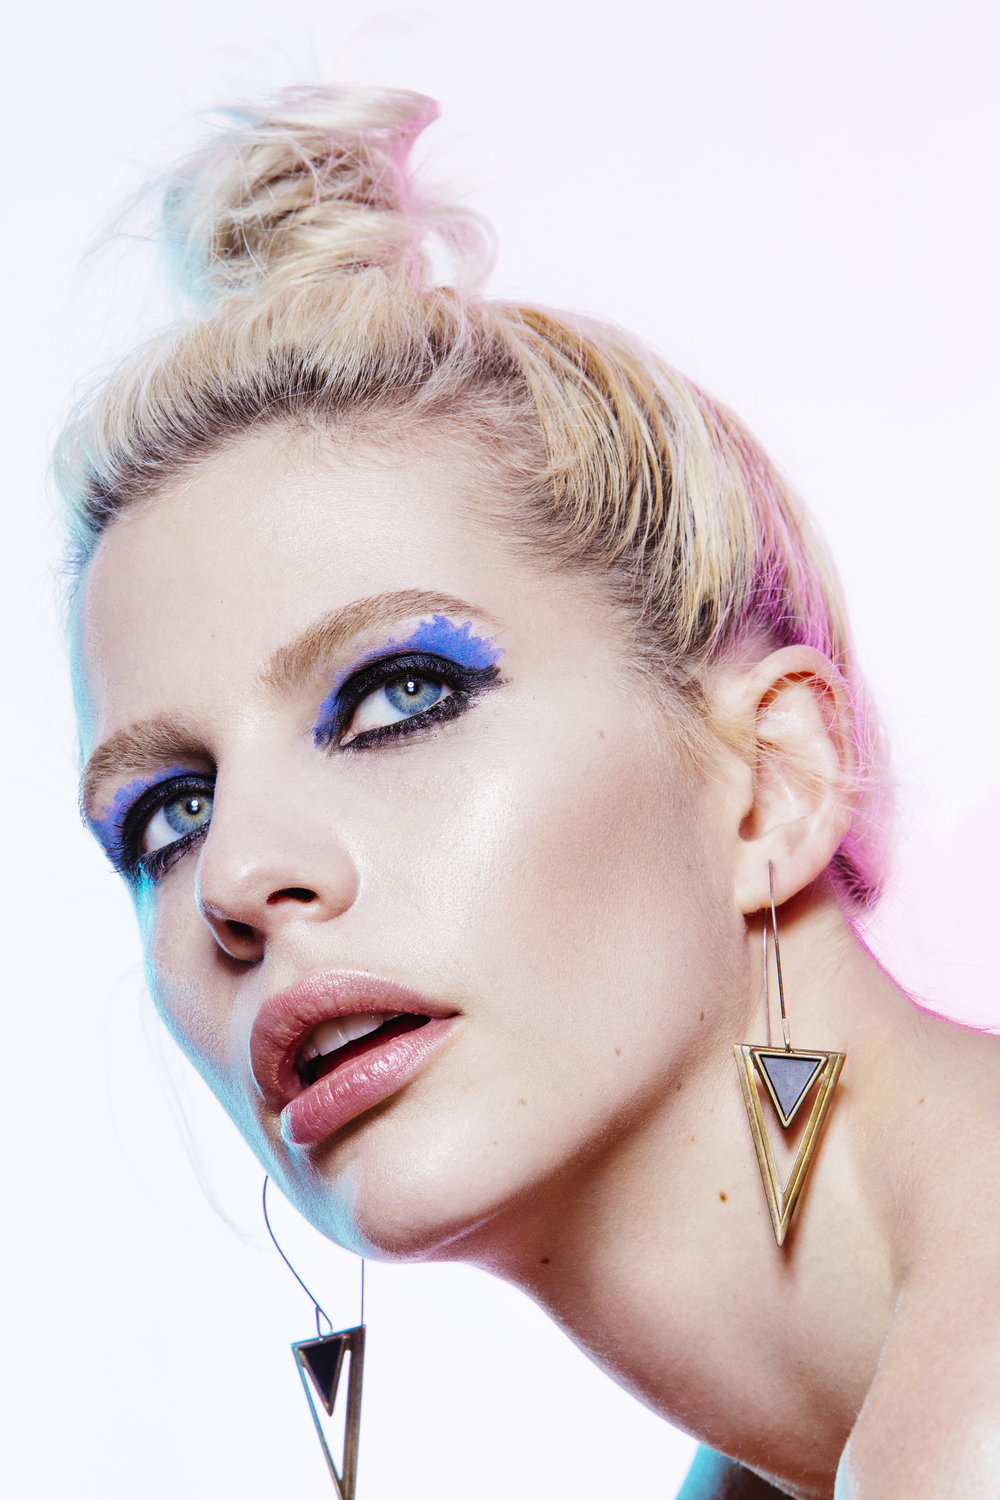 beauty_and_fashion_photographer_gia_goodrich_beauty_editorial_anna_caroom_makeup_trends_fall_winter_black_eyeliner_look4_08.jpg